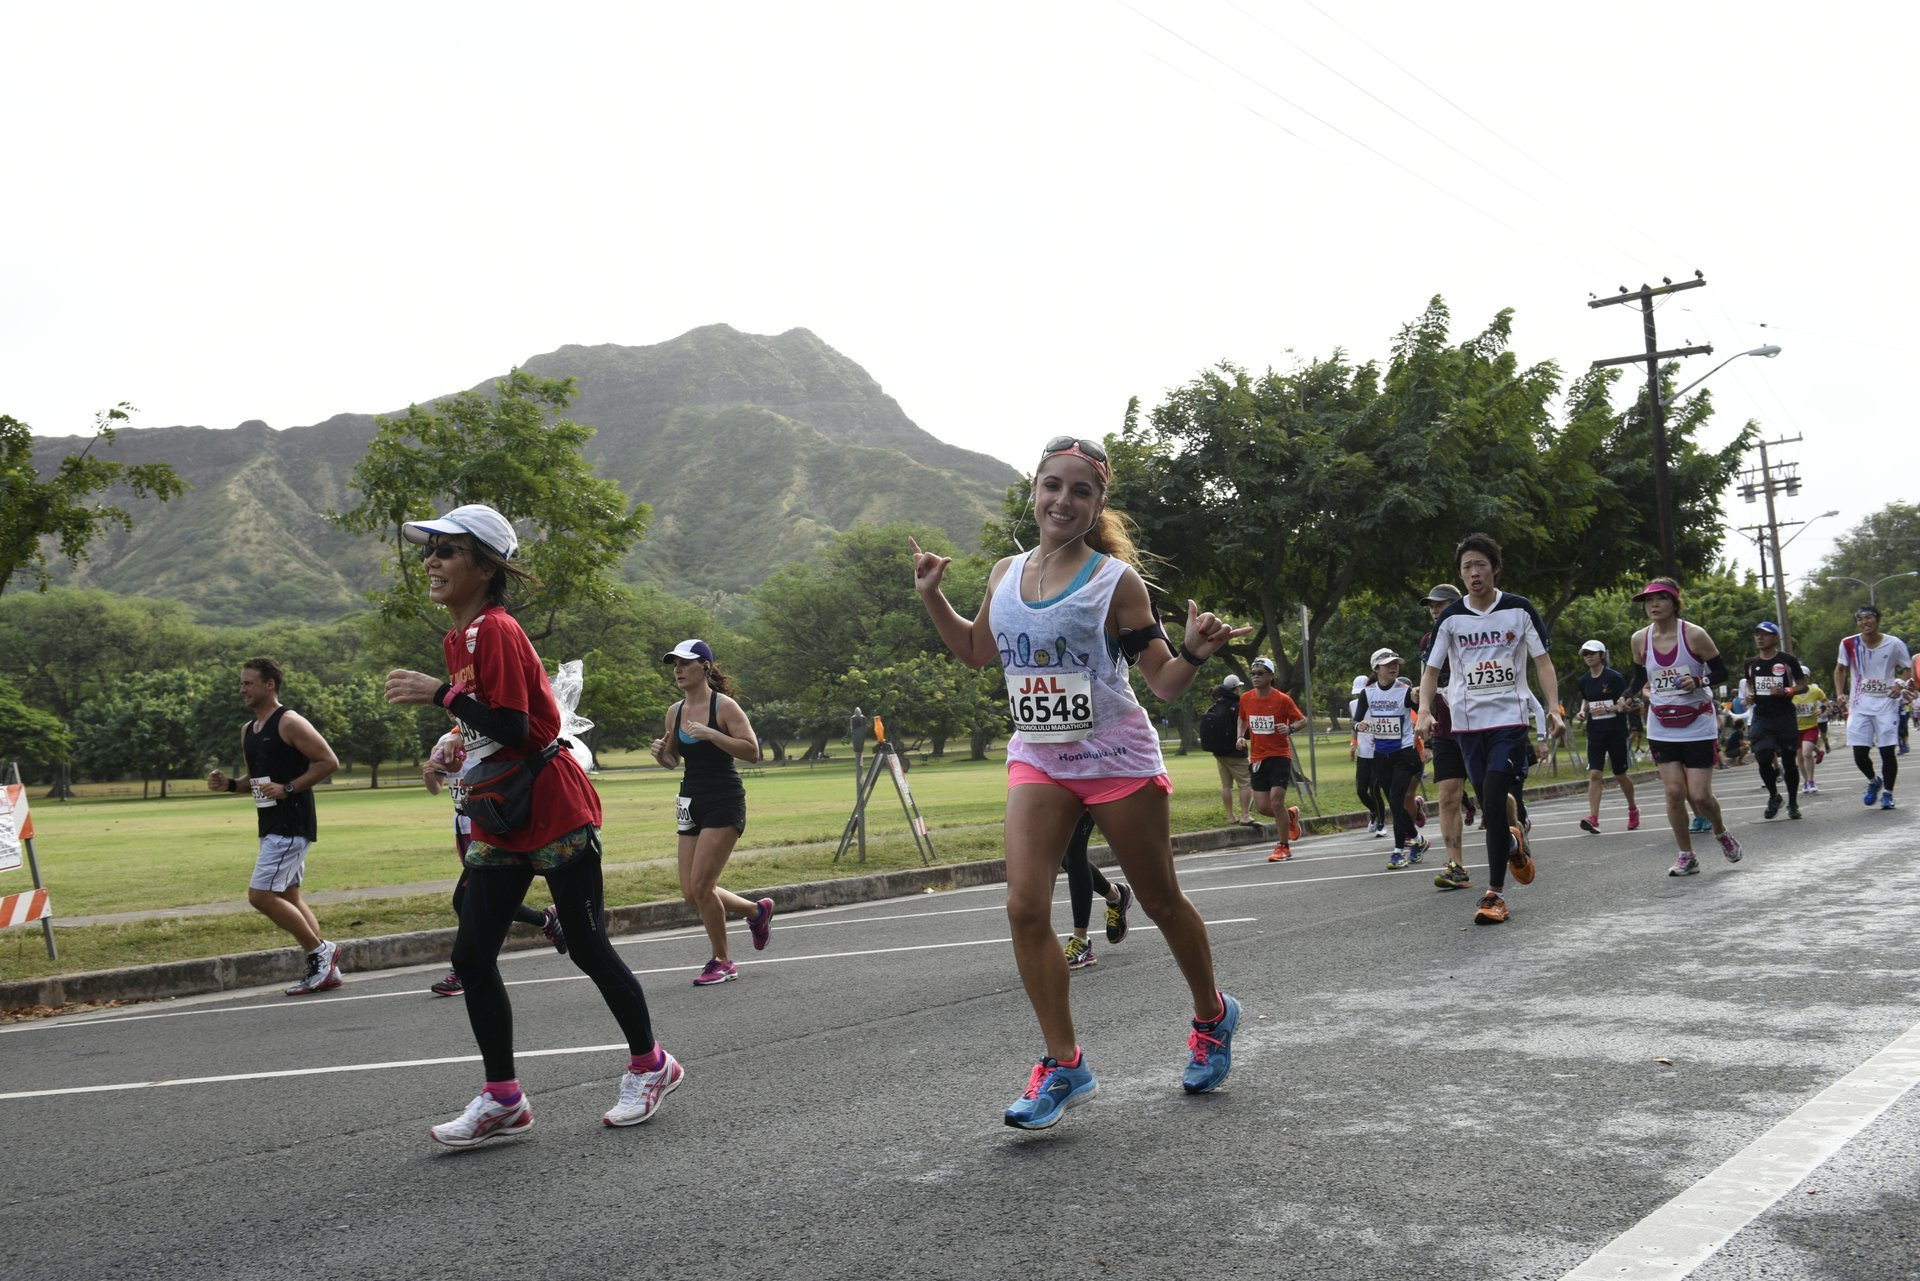 Best time to see Honolulu Marathon 2019